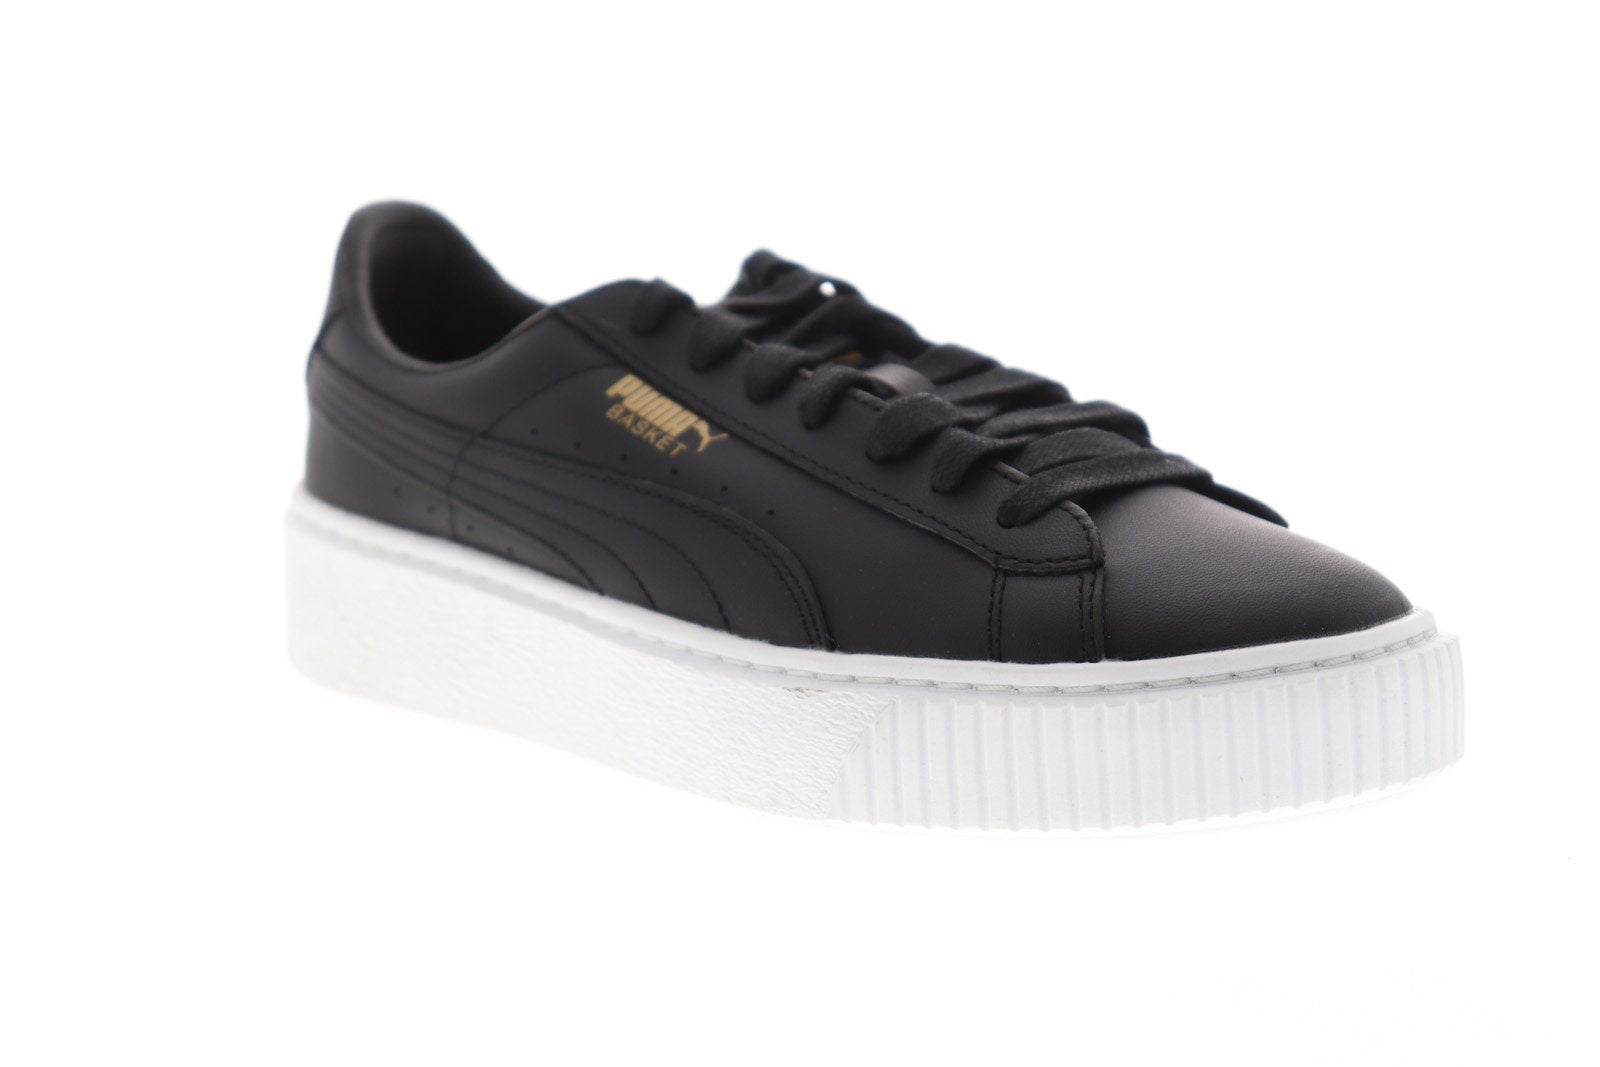 save off 28ace 168ad Puma Basket Platform Core Womens Black Leather Low Top Sneakers Shoes